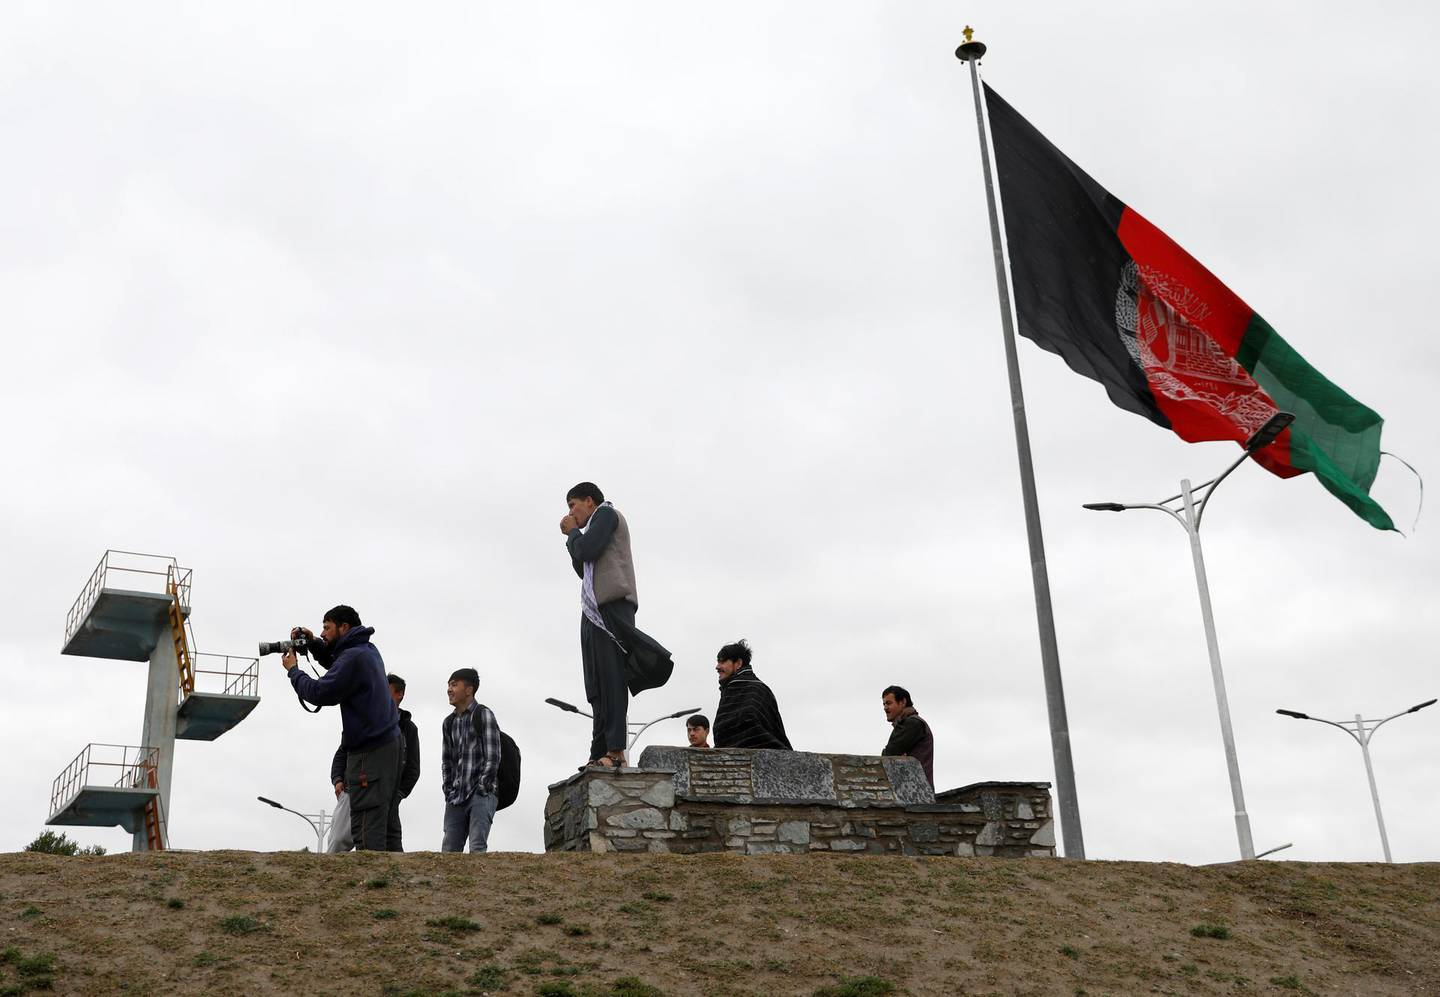 Youths take pictures next to an Afghan flag on a hilltop overlooking Kabul, Afghanistan, April 15, 2021. REUTERS/Mohammad Ismail